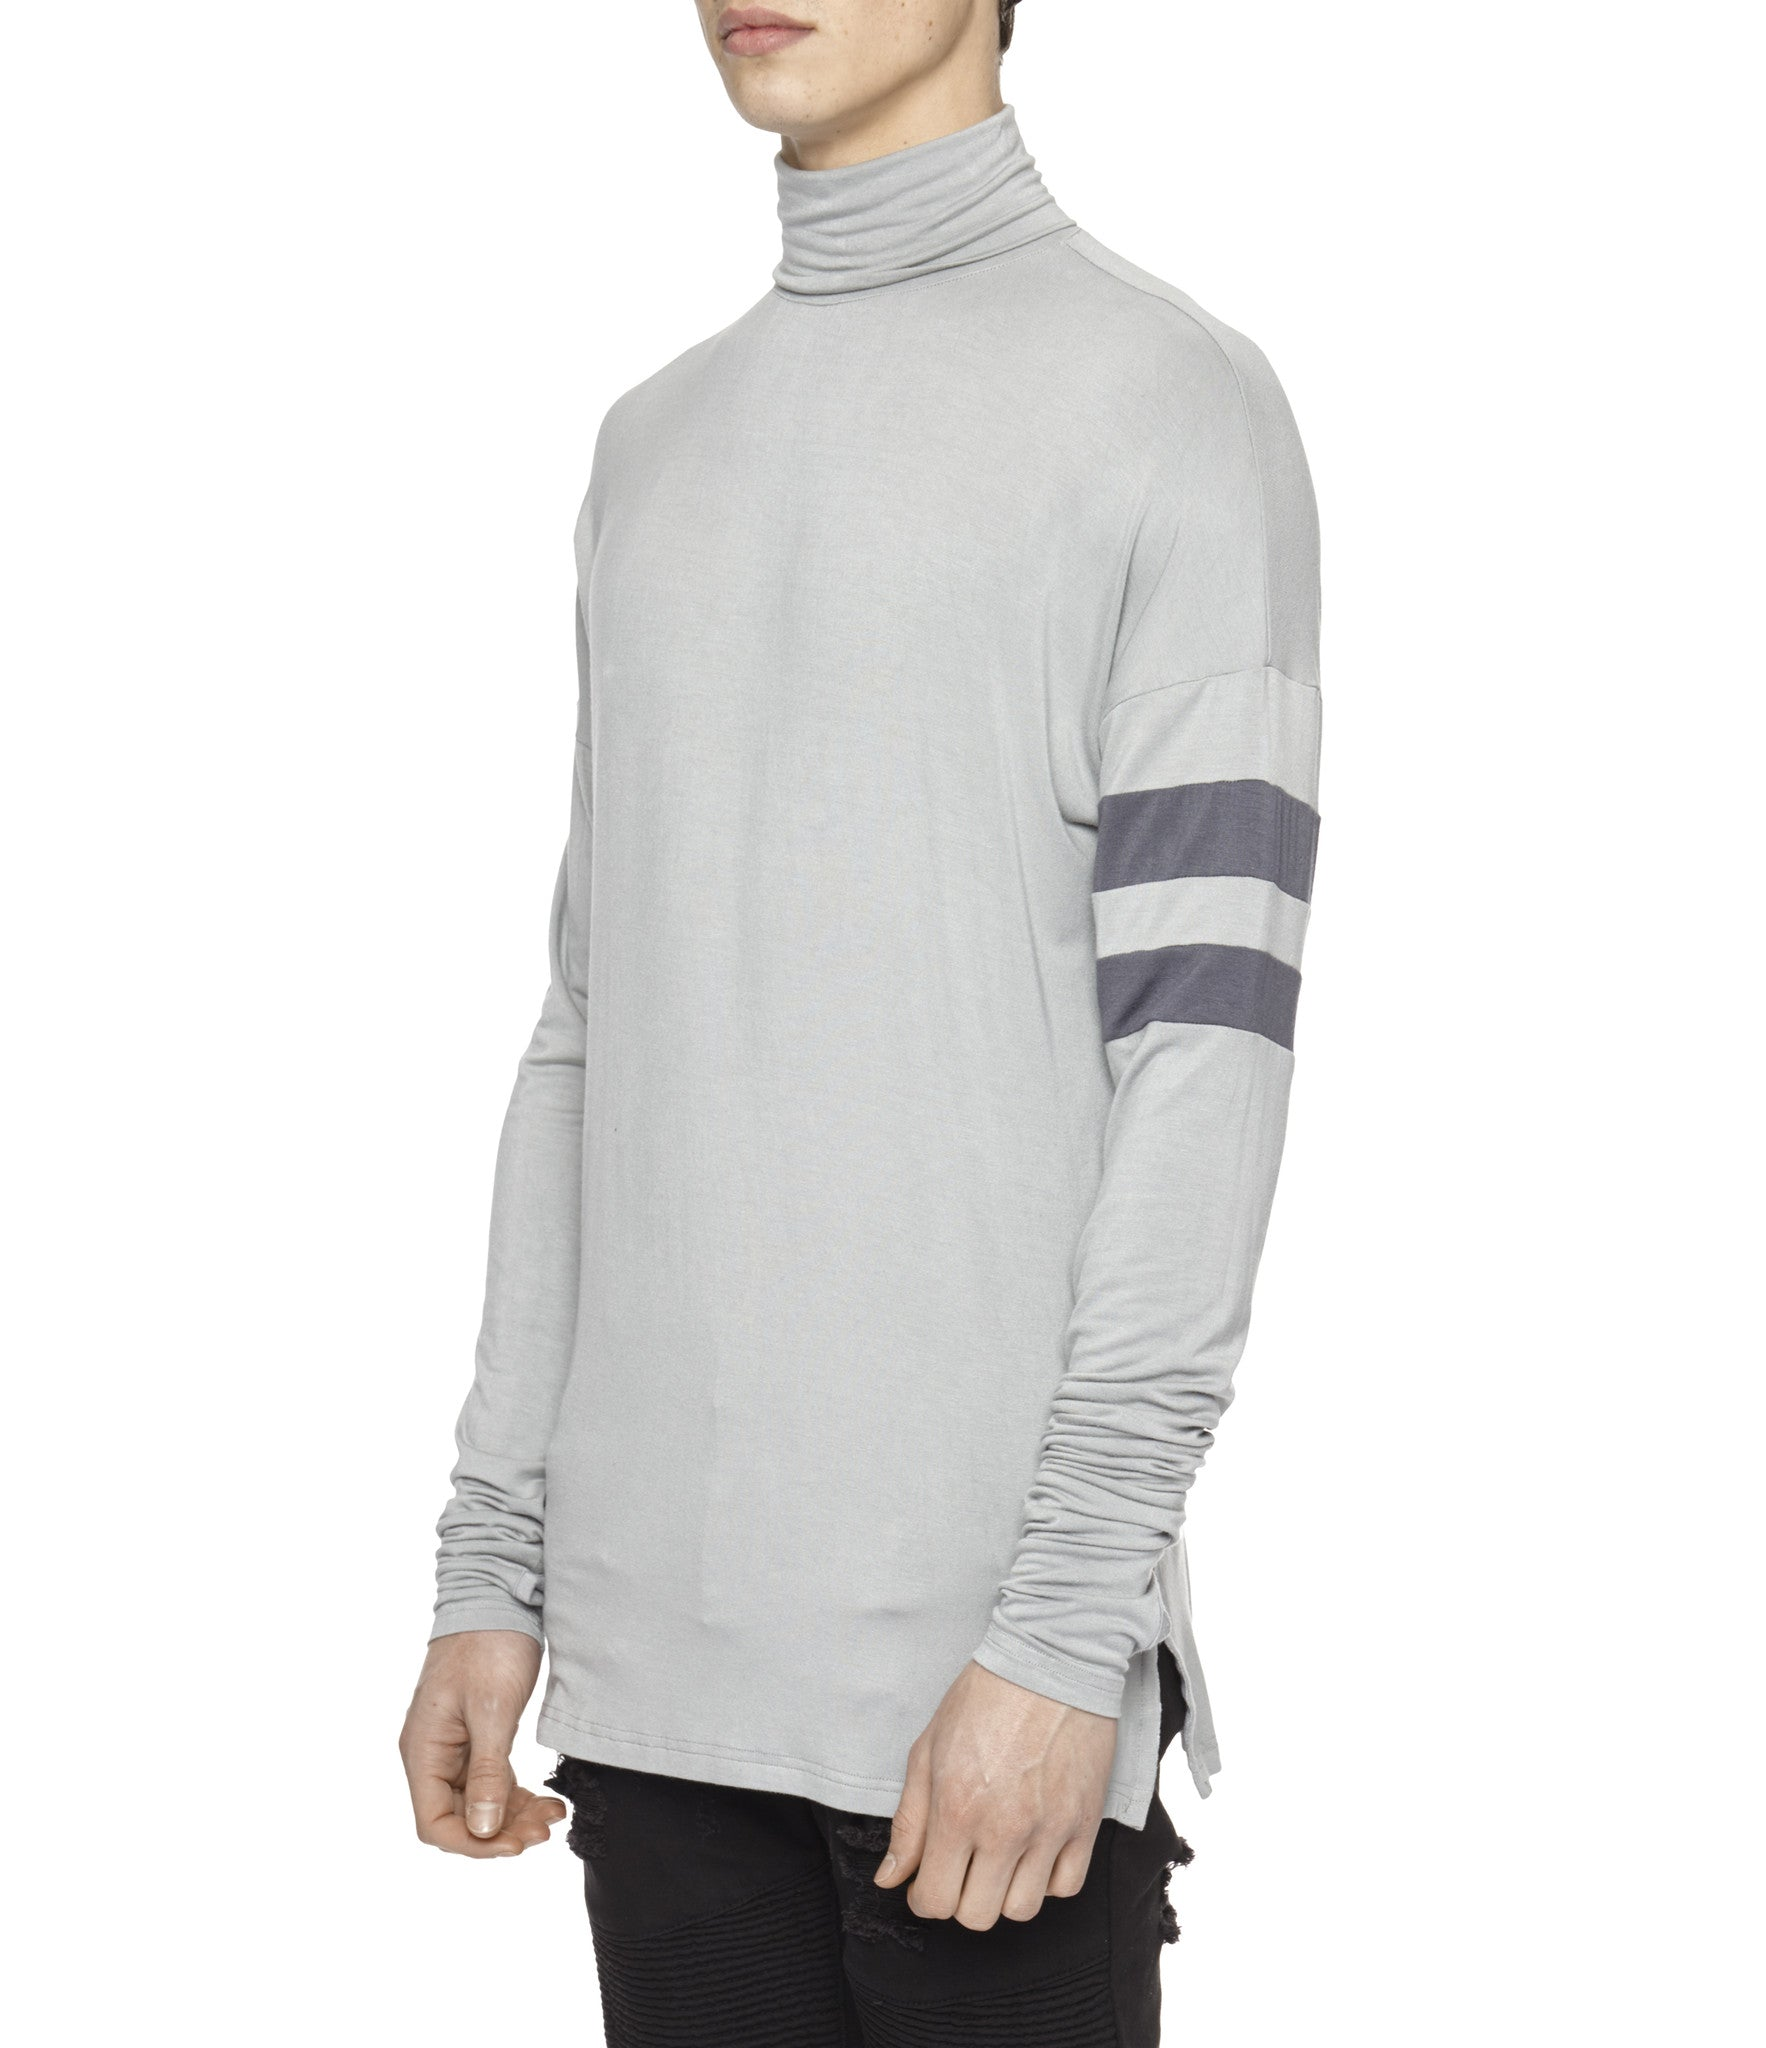 LS105 Roll Neck Under Layer L/S Tee - Ash Grey - underated london - underatedco - 4